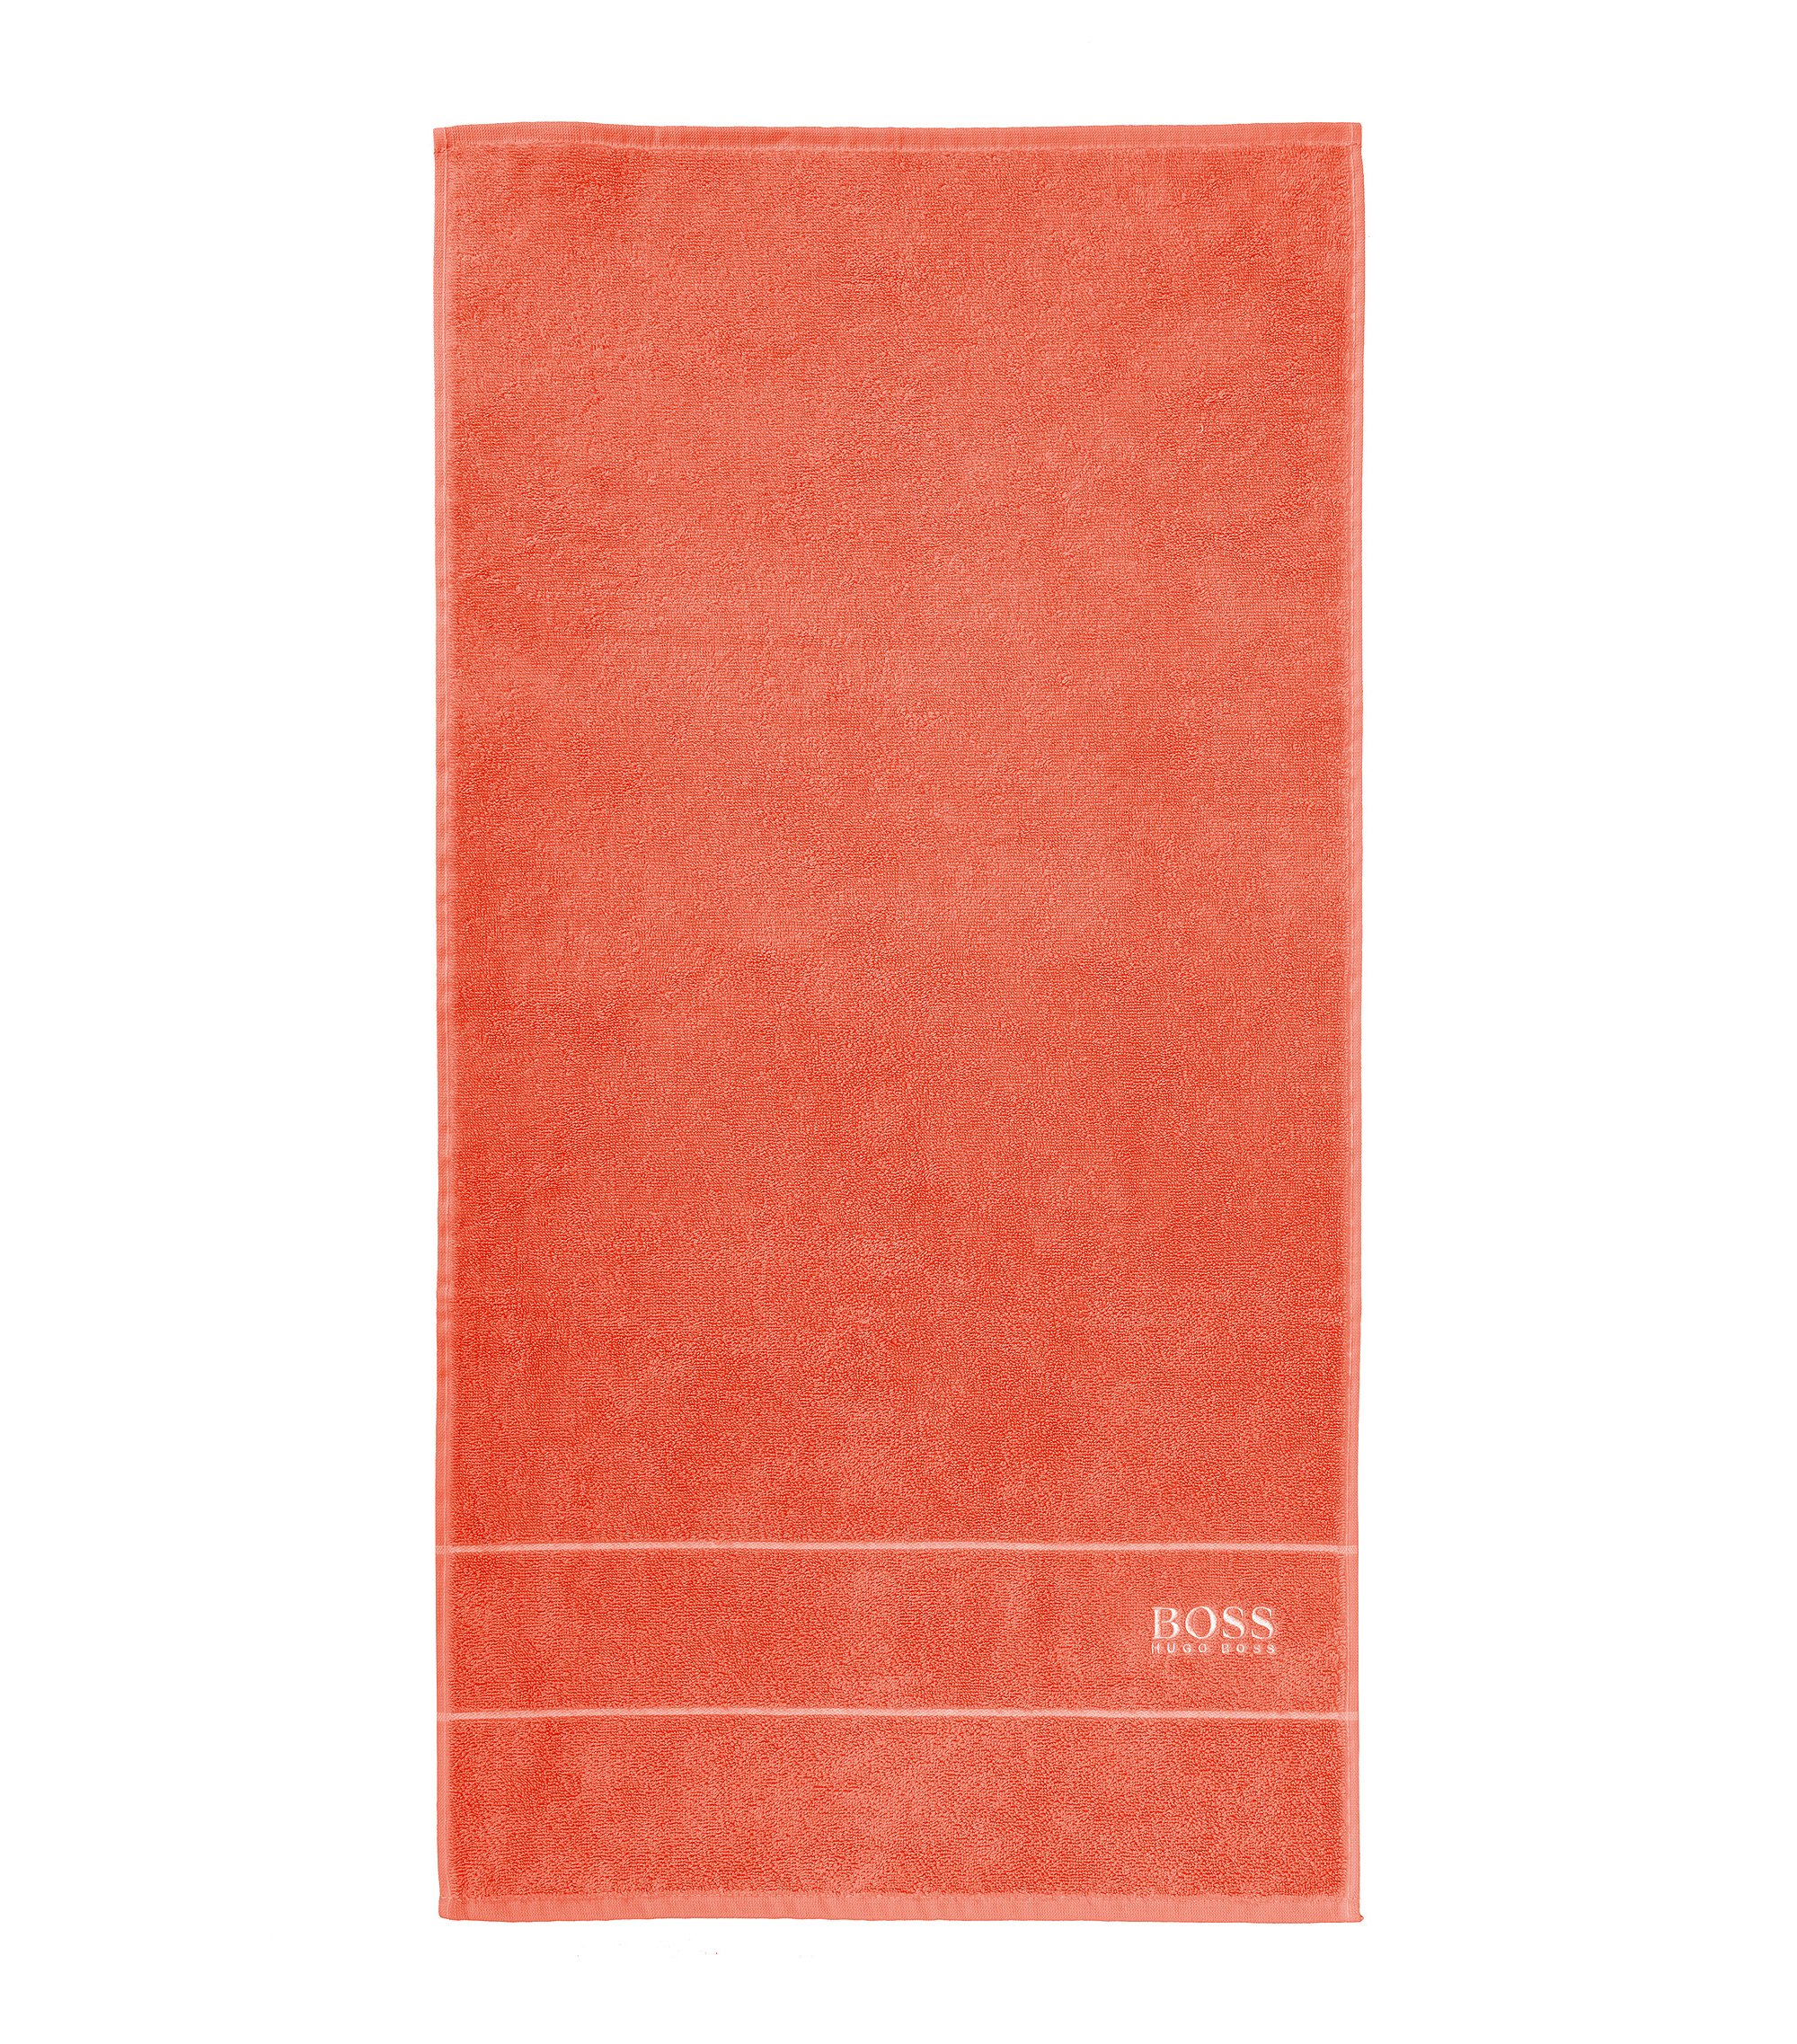 Finest Egyptian cotton hand towel with logo border, Orange